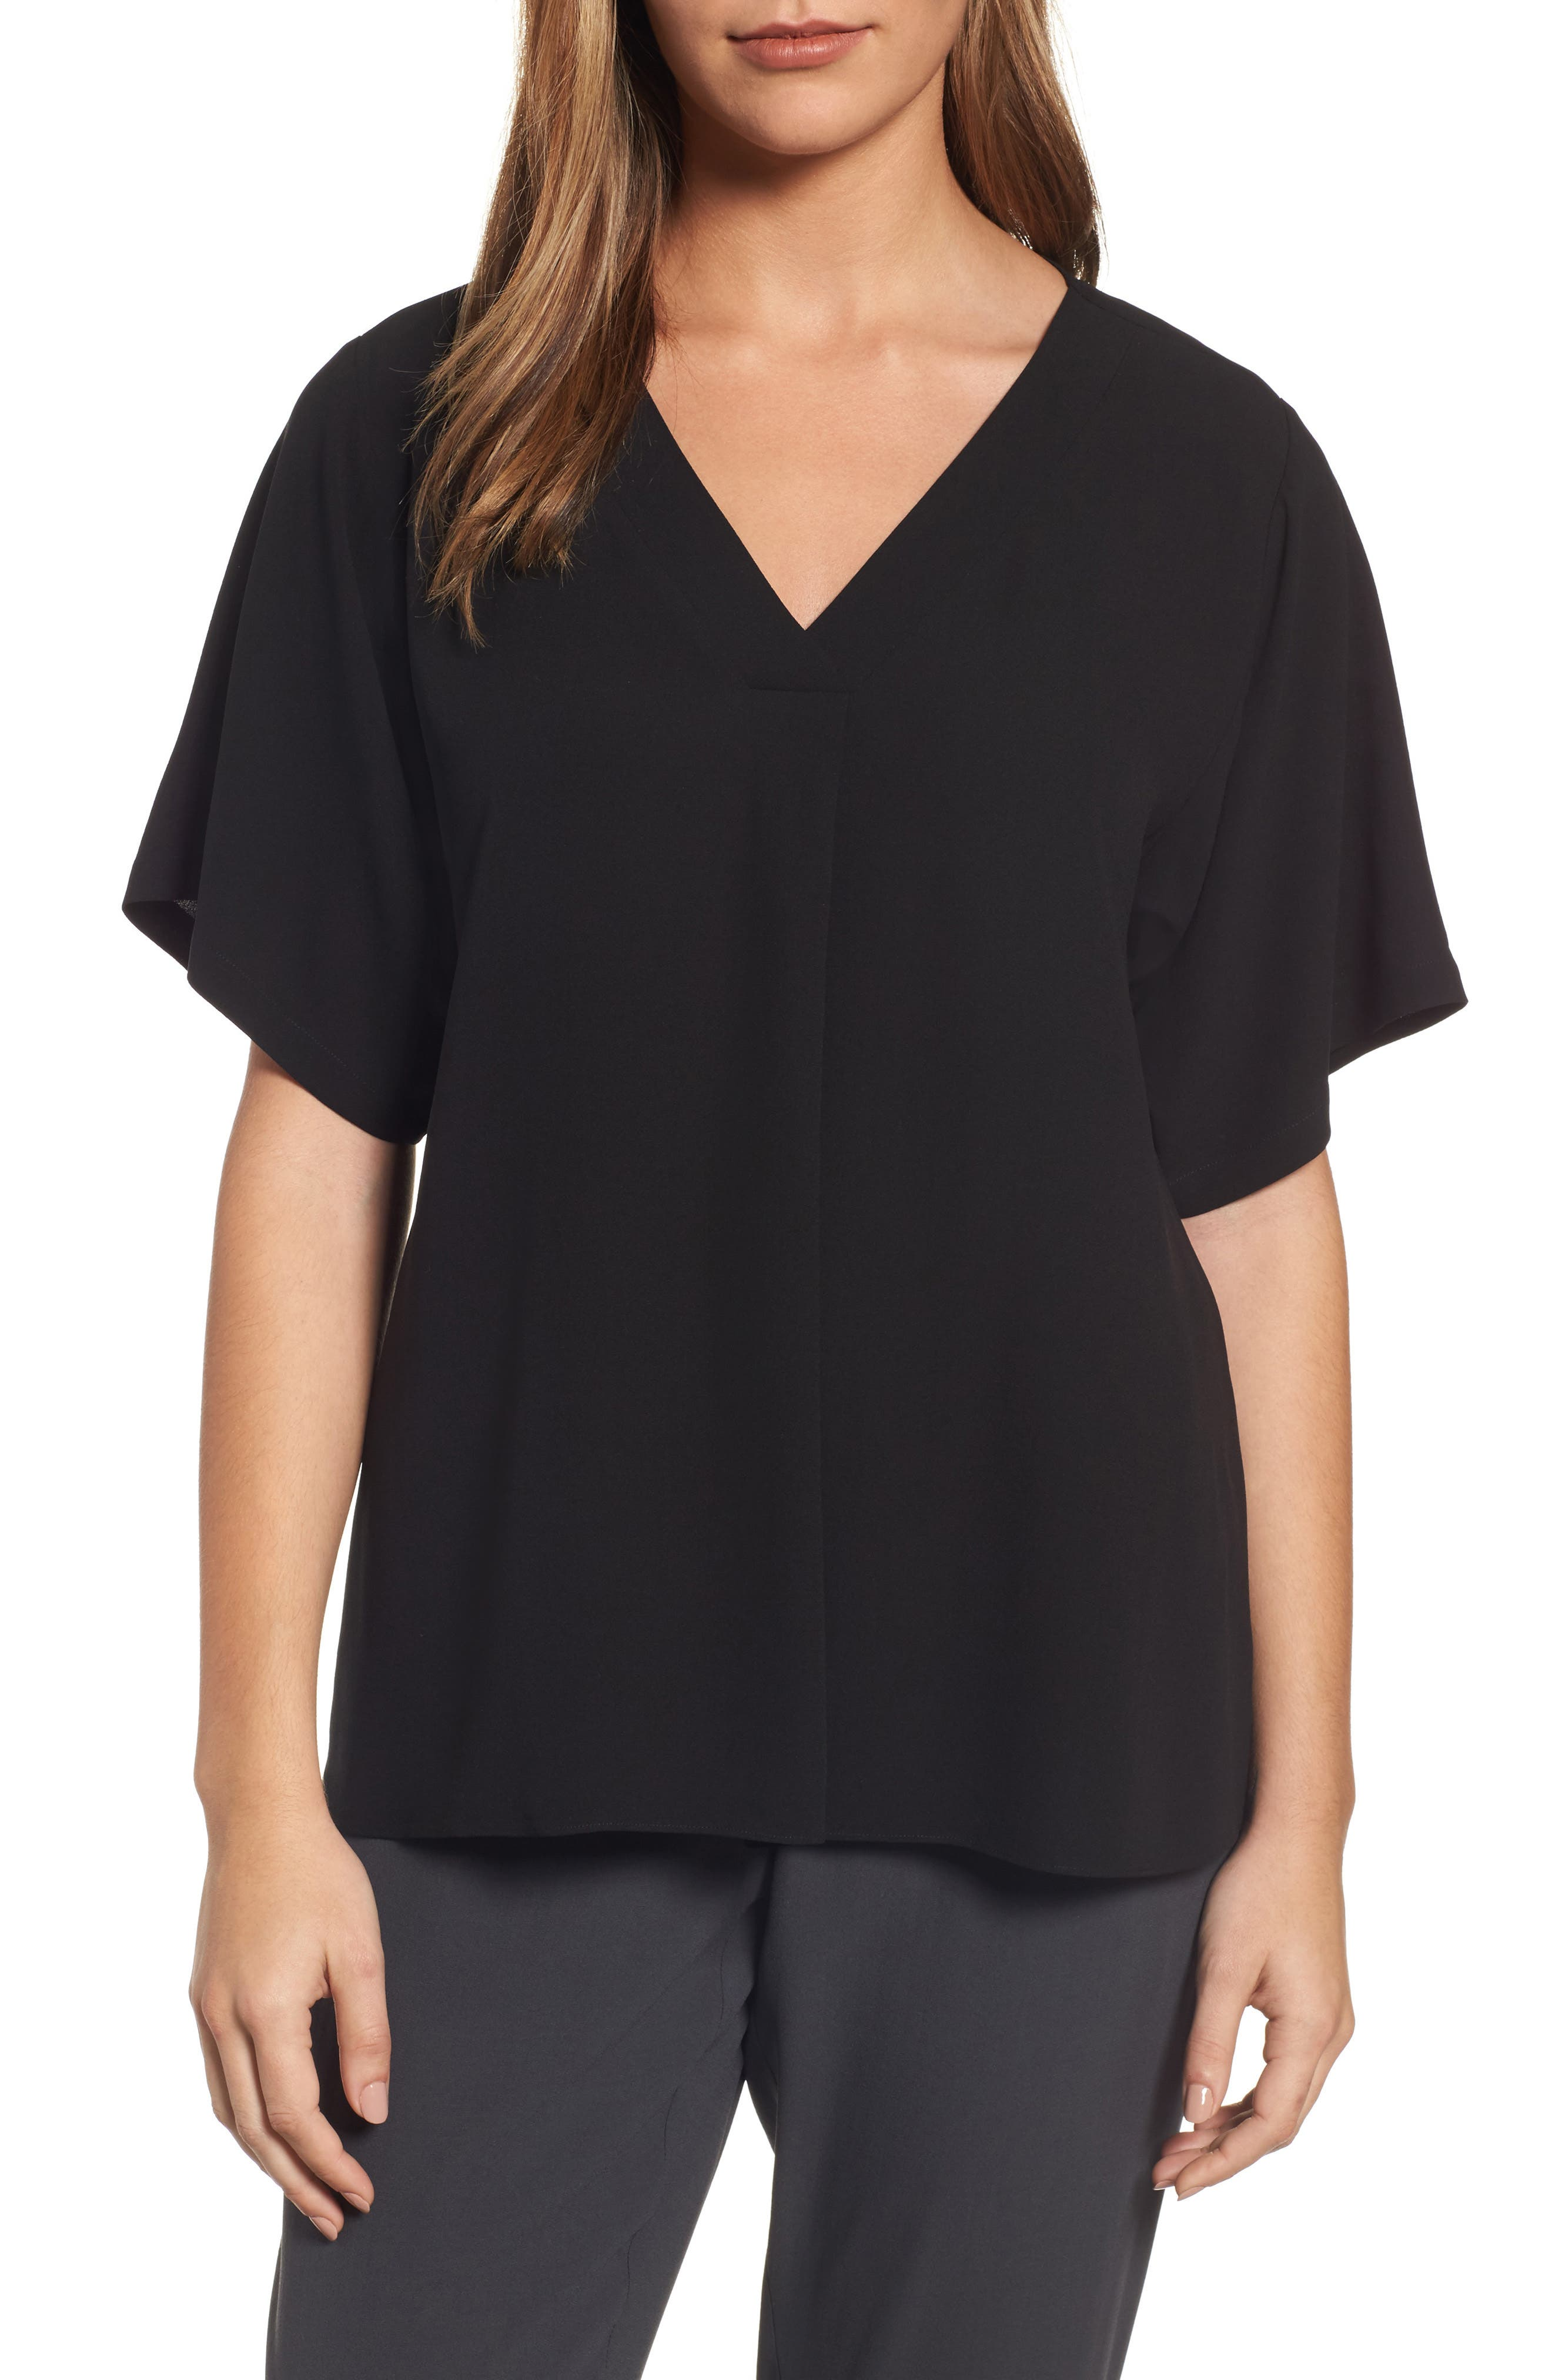 Main Image - Eileen Fisher Silk V-Neck Top (Regular & Petite)